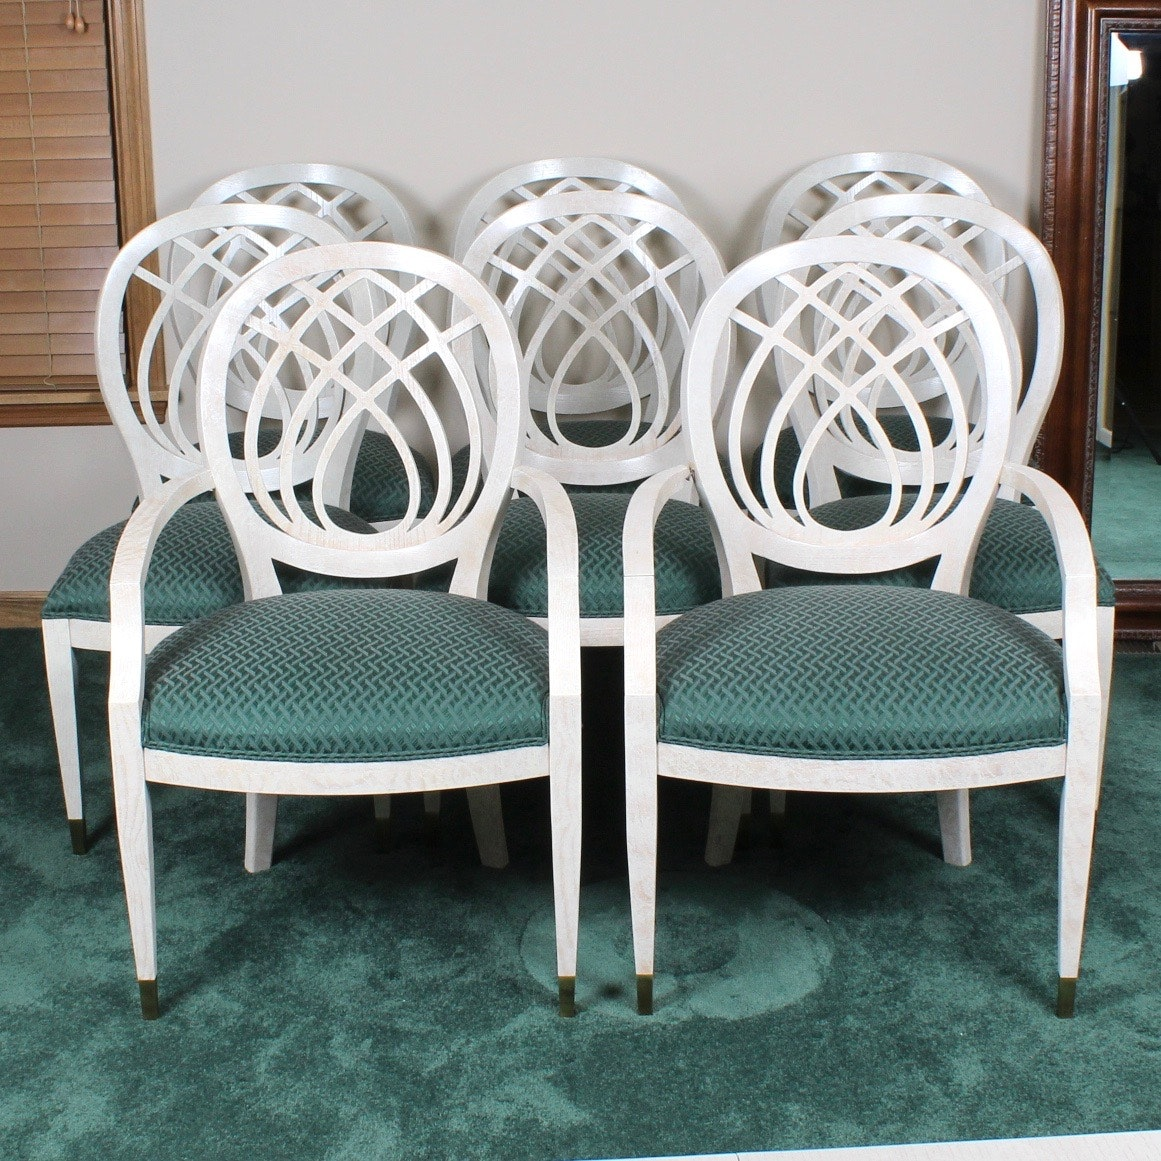 Contemporary Balloon Back Dining Chairs From Henredon Furniture ...